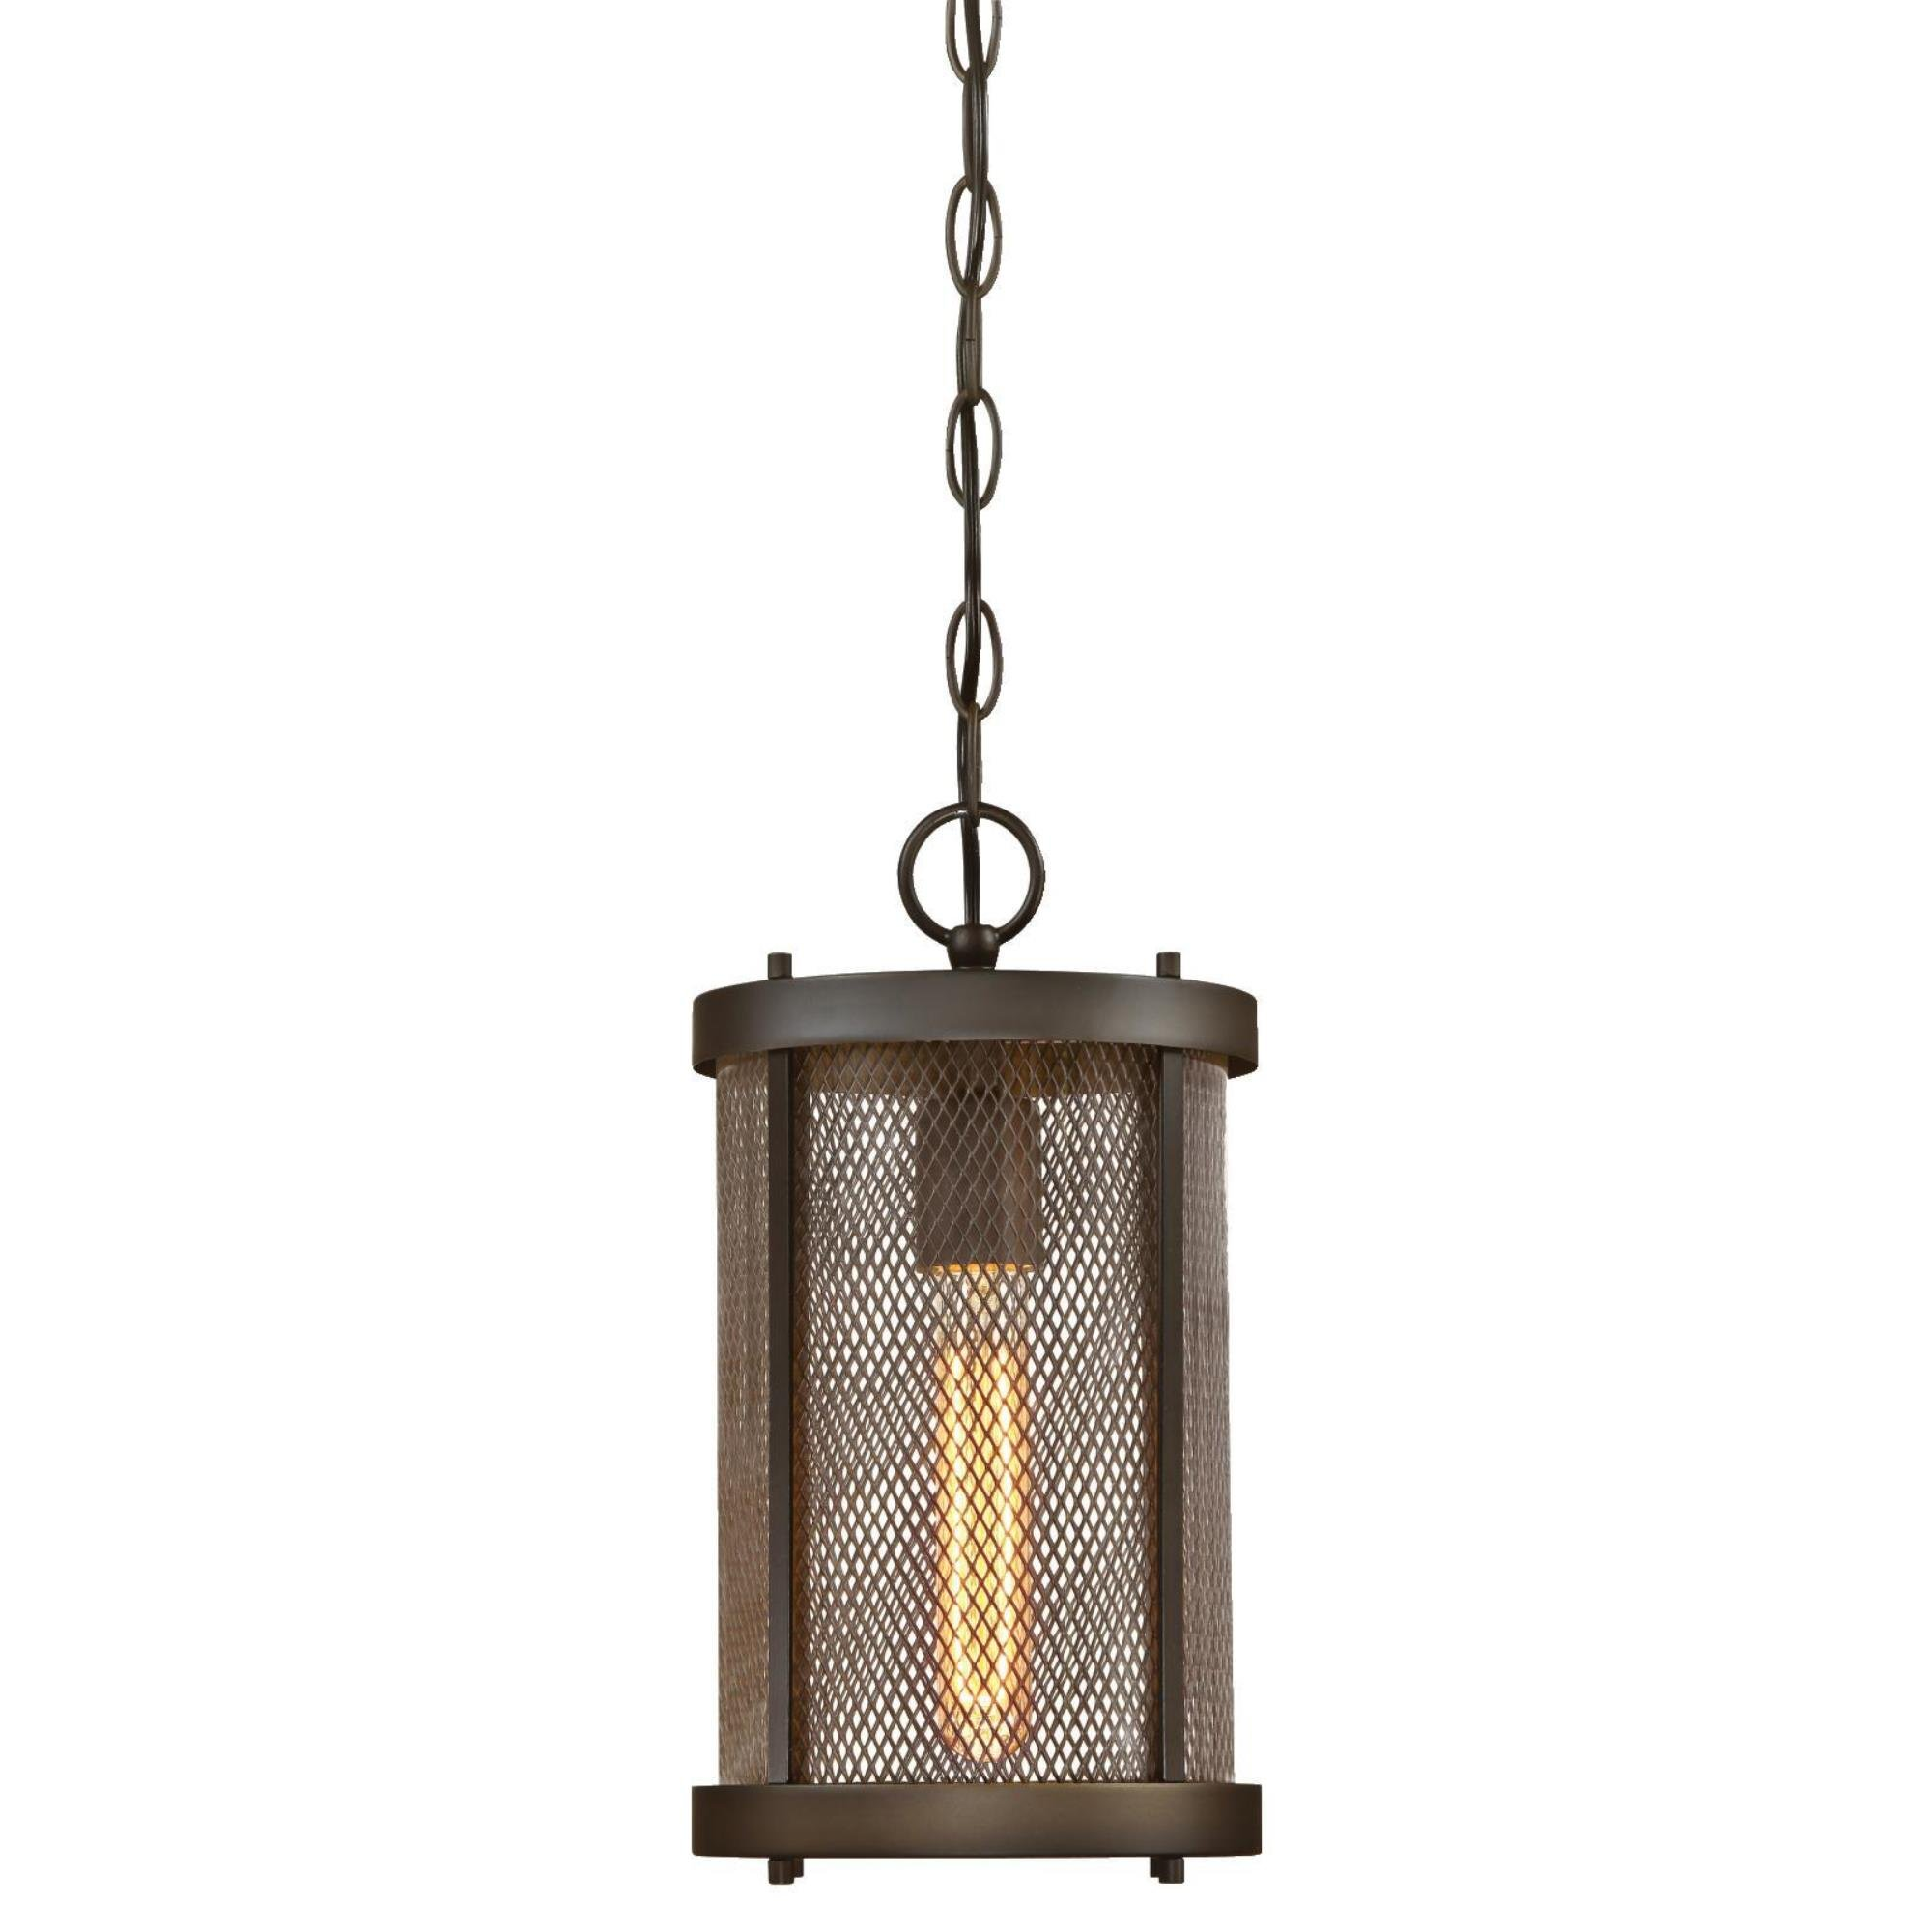 Westinghouse 6318200 Skyview One-Light Outdoor Pendant with Mesh and Clear Glass, Oil Rubbed Bronze